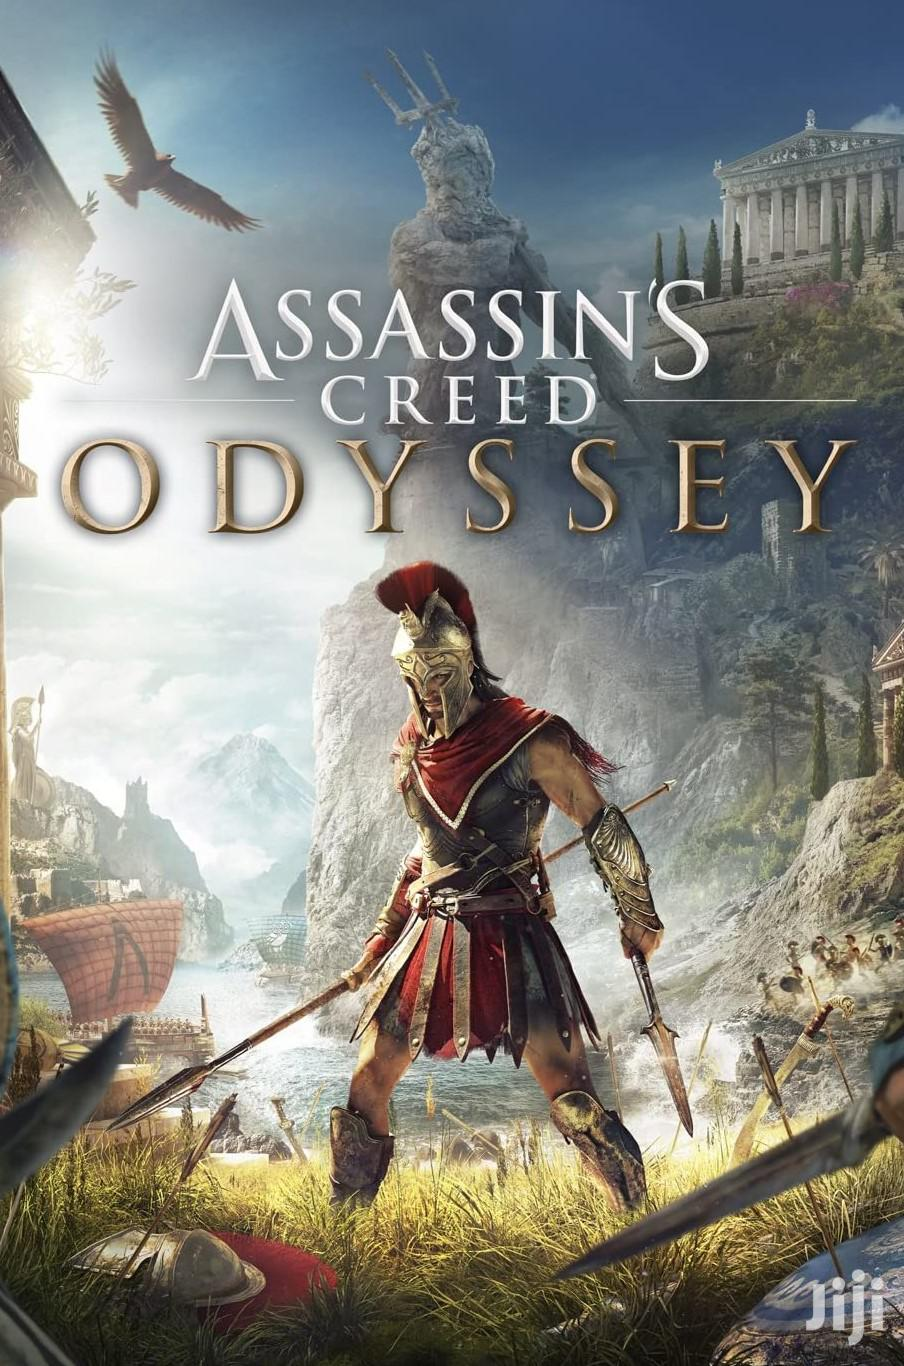 Archive: Assassin's Creed Odyssey